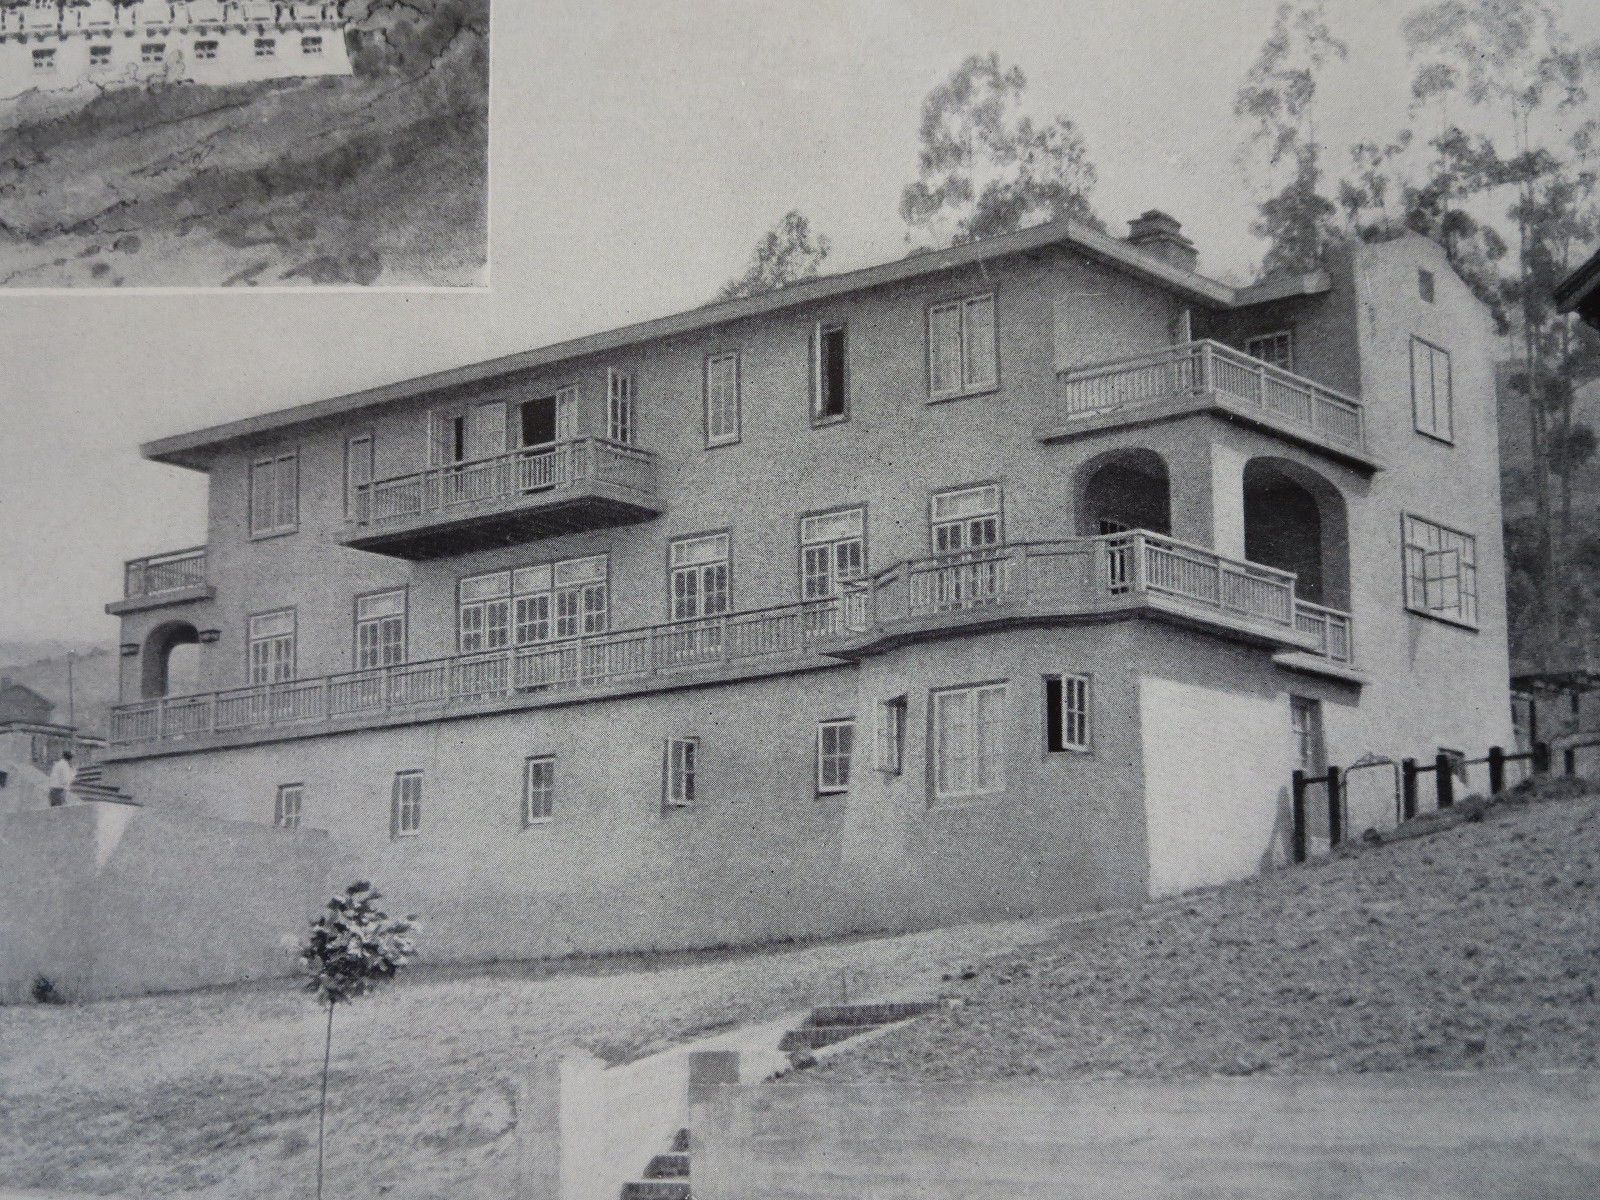 Alexander Sclater, Esq. House, Claremont Hills, CA, 1911, Lithograph